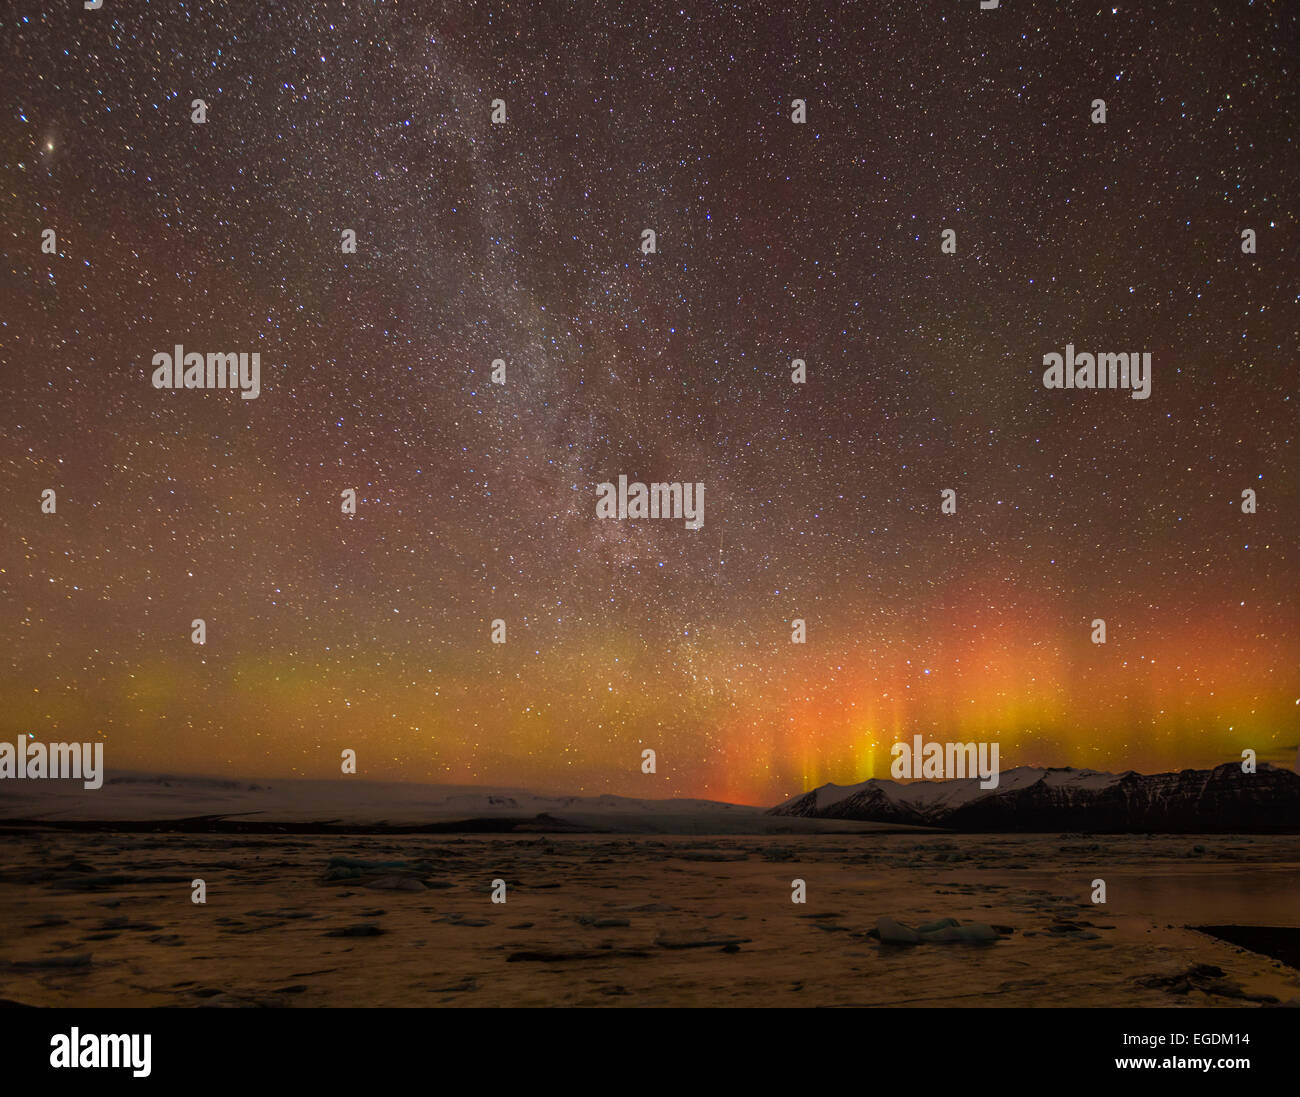 Aurora borealis or Northern Lights and Milky Way galaxy Jokulsarlon Iceland Europe - Stock Image